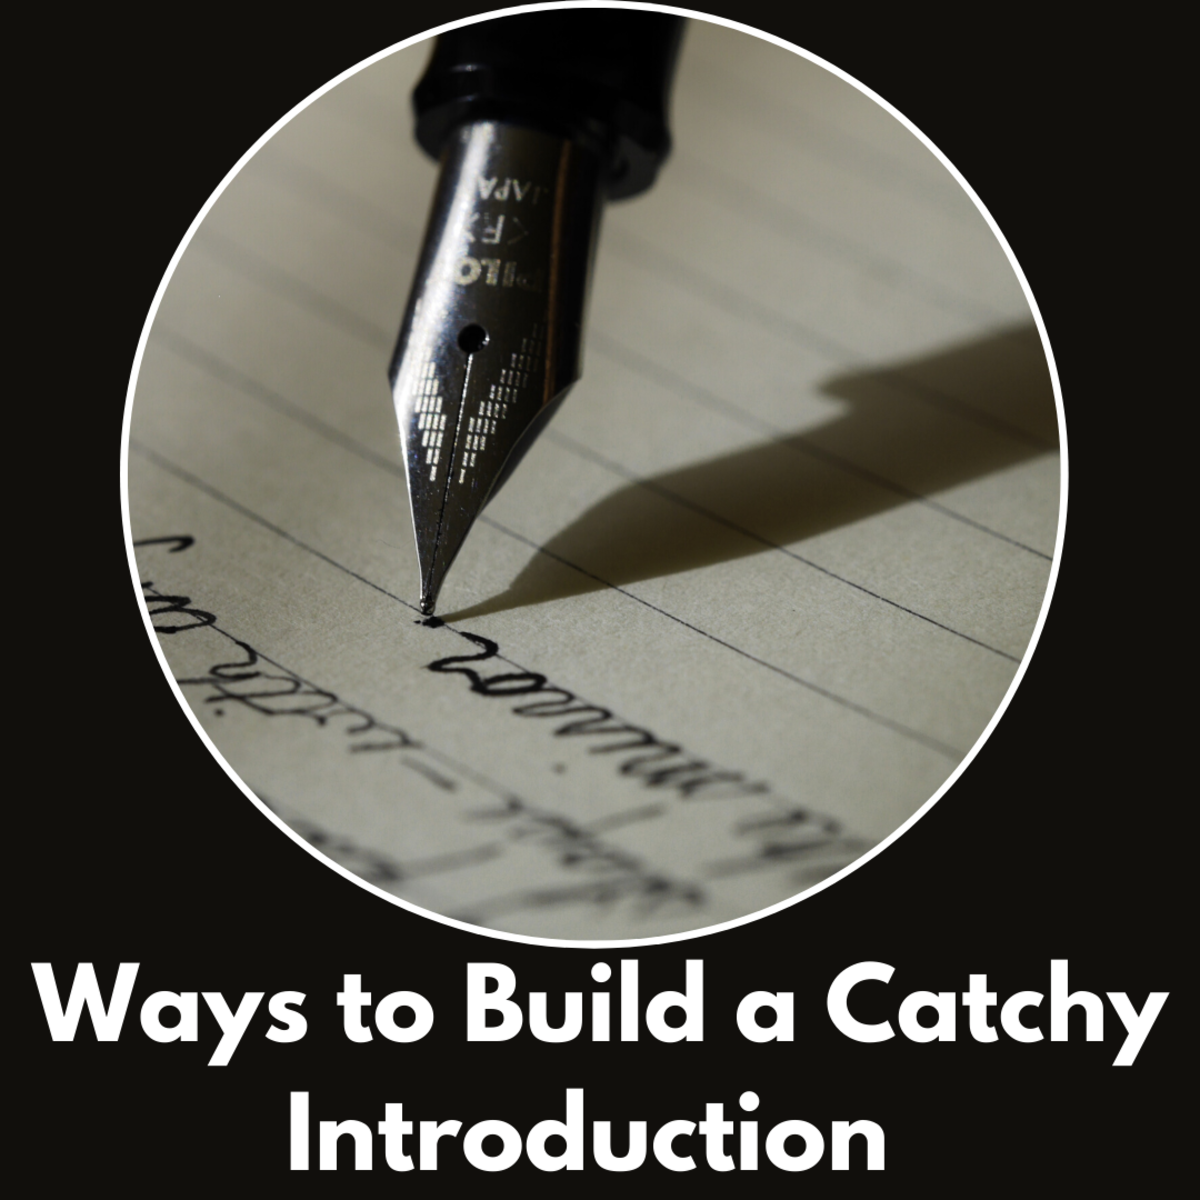 Writing a catchy intro is easier than you might think. Read on to learn tips and tricks to hooks your readers.